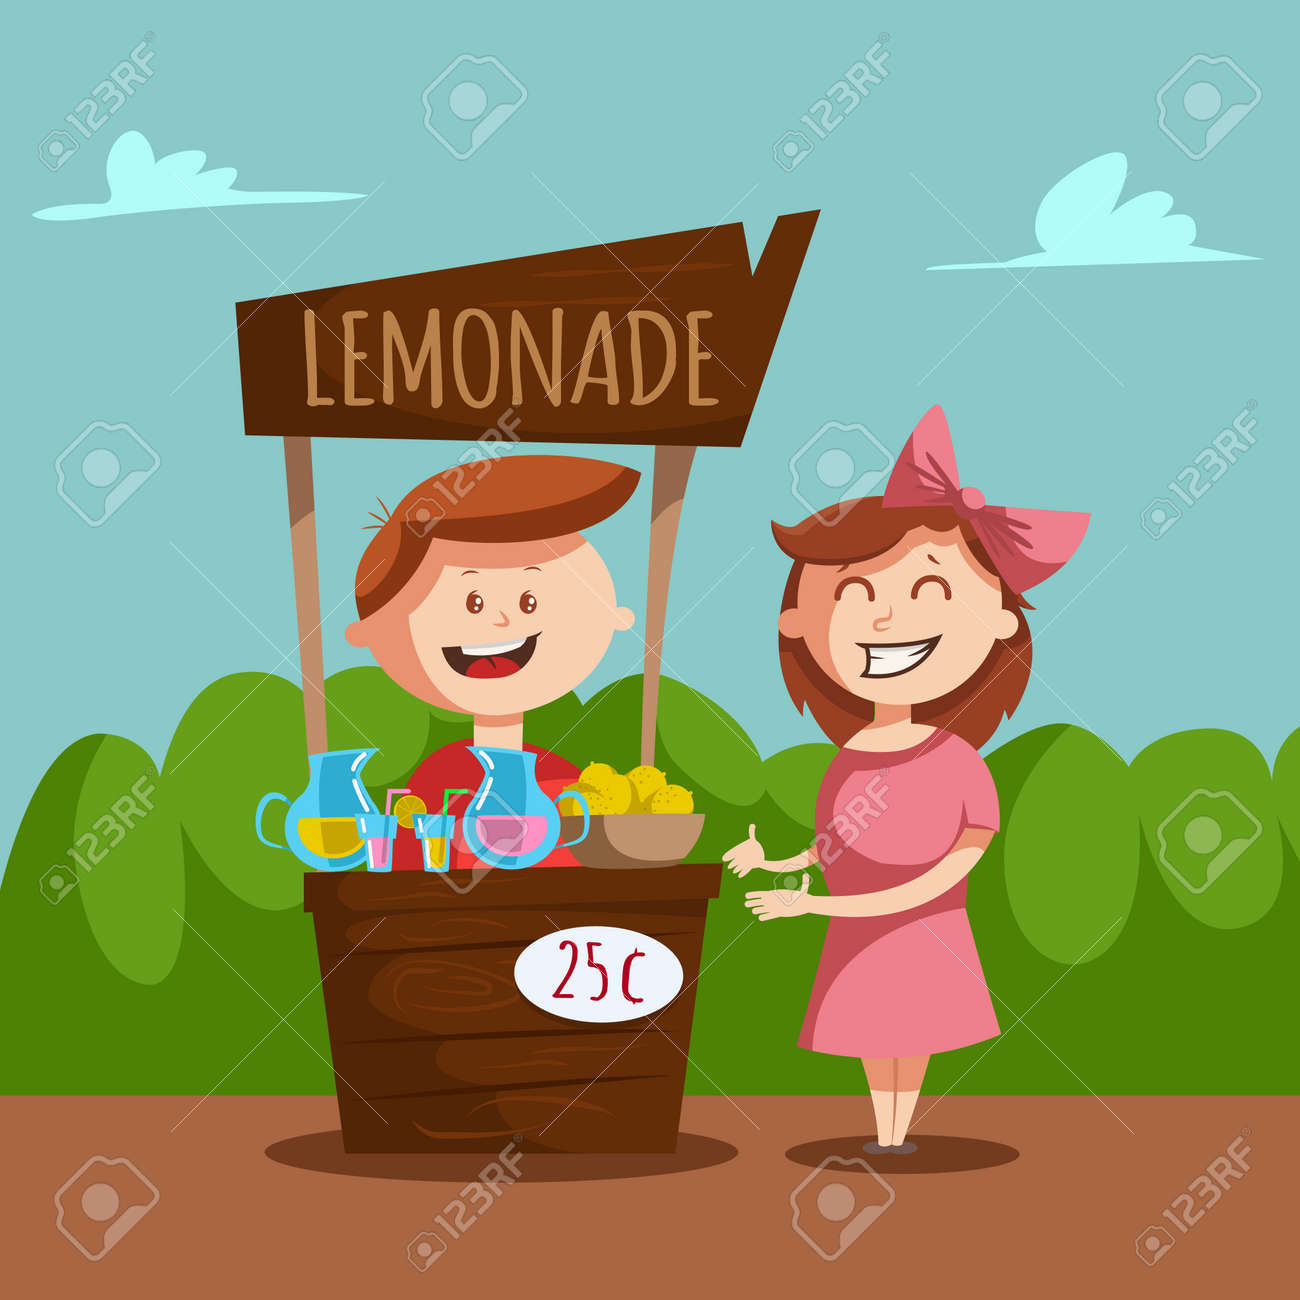 Lemonade stand with a pitcher and glass jar with lemon juice. Vector cartoon illustration of a boy and a girl selling a chilled pink and yellow drink. - 170637075